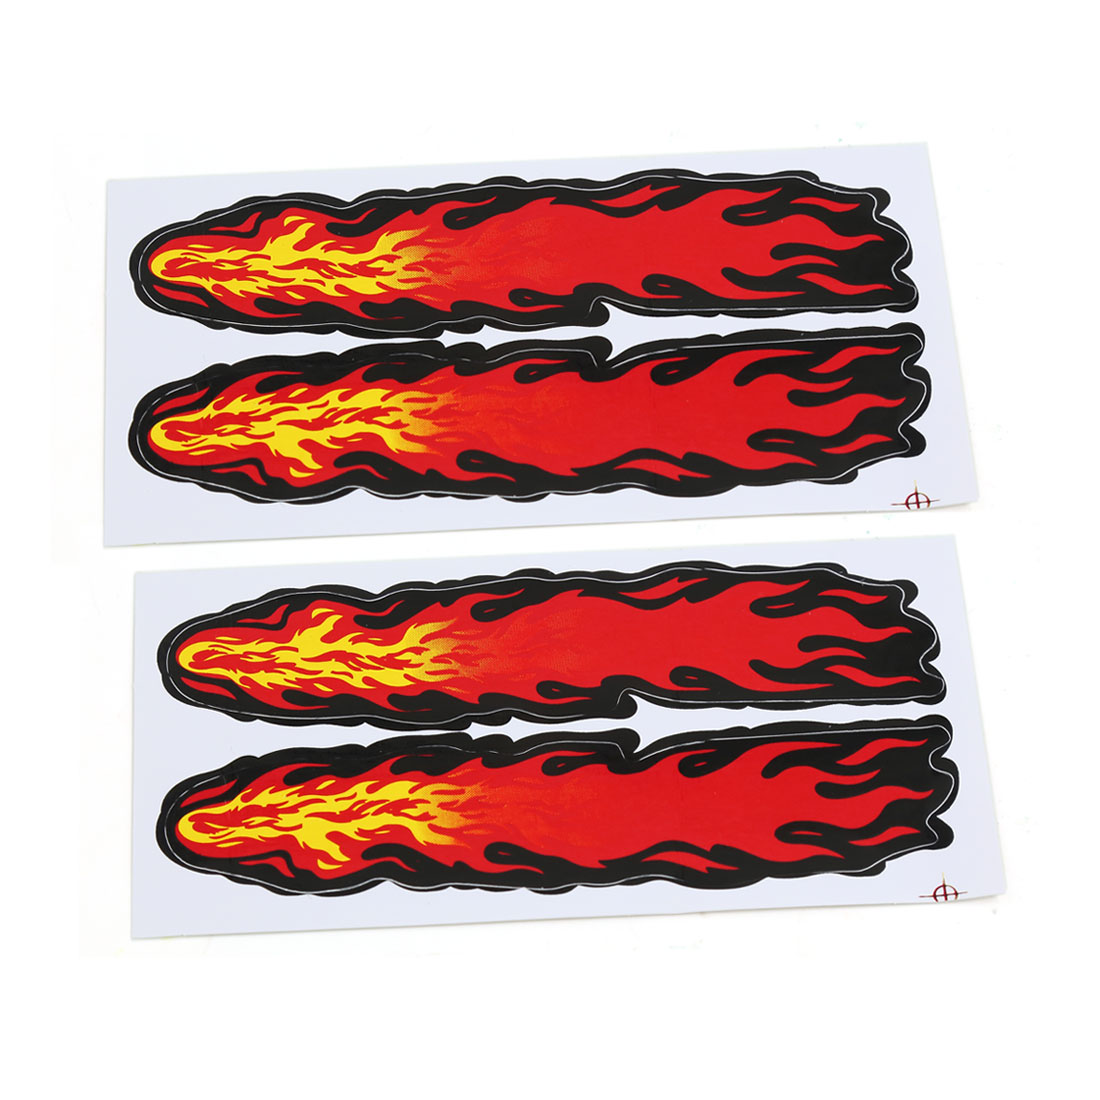 Yellow Red Flame Style Car Decoration Wall Vinyl Stickers Decals 16cm x 8cm 2pcs